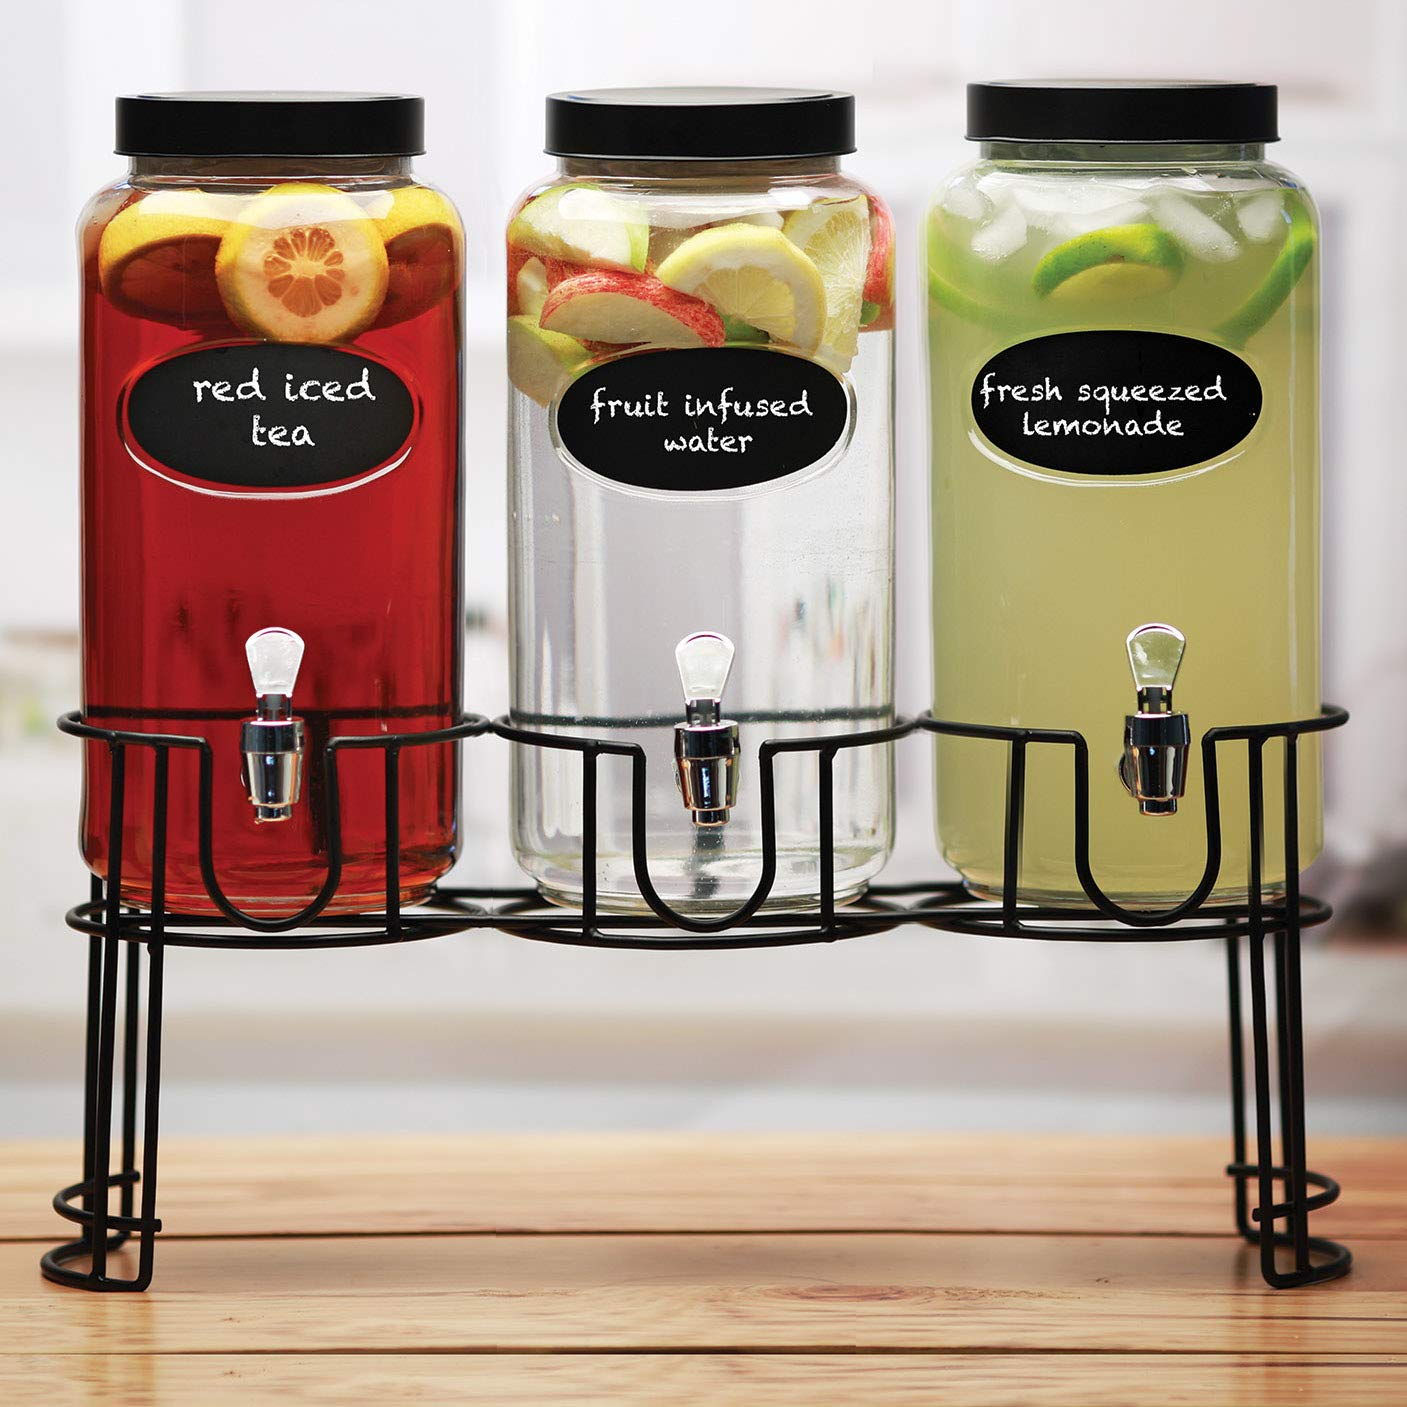 Circleware 69111 Trimont Set of 3 Glass Beverage Dispensers with Lid Chalkboard & Black Metal Stand, Entertainment Kitchen Glassware for Water, Juice, Wine, Kombucha and Cold Drinks, 118 oz Clear